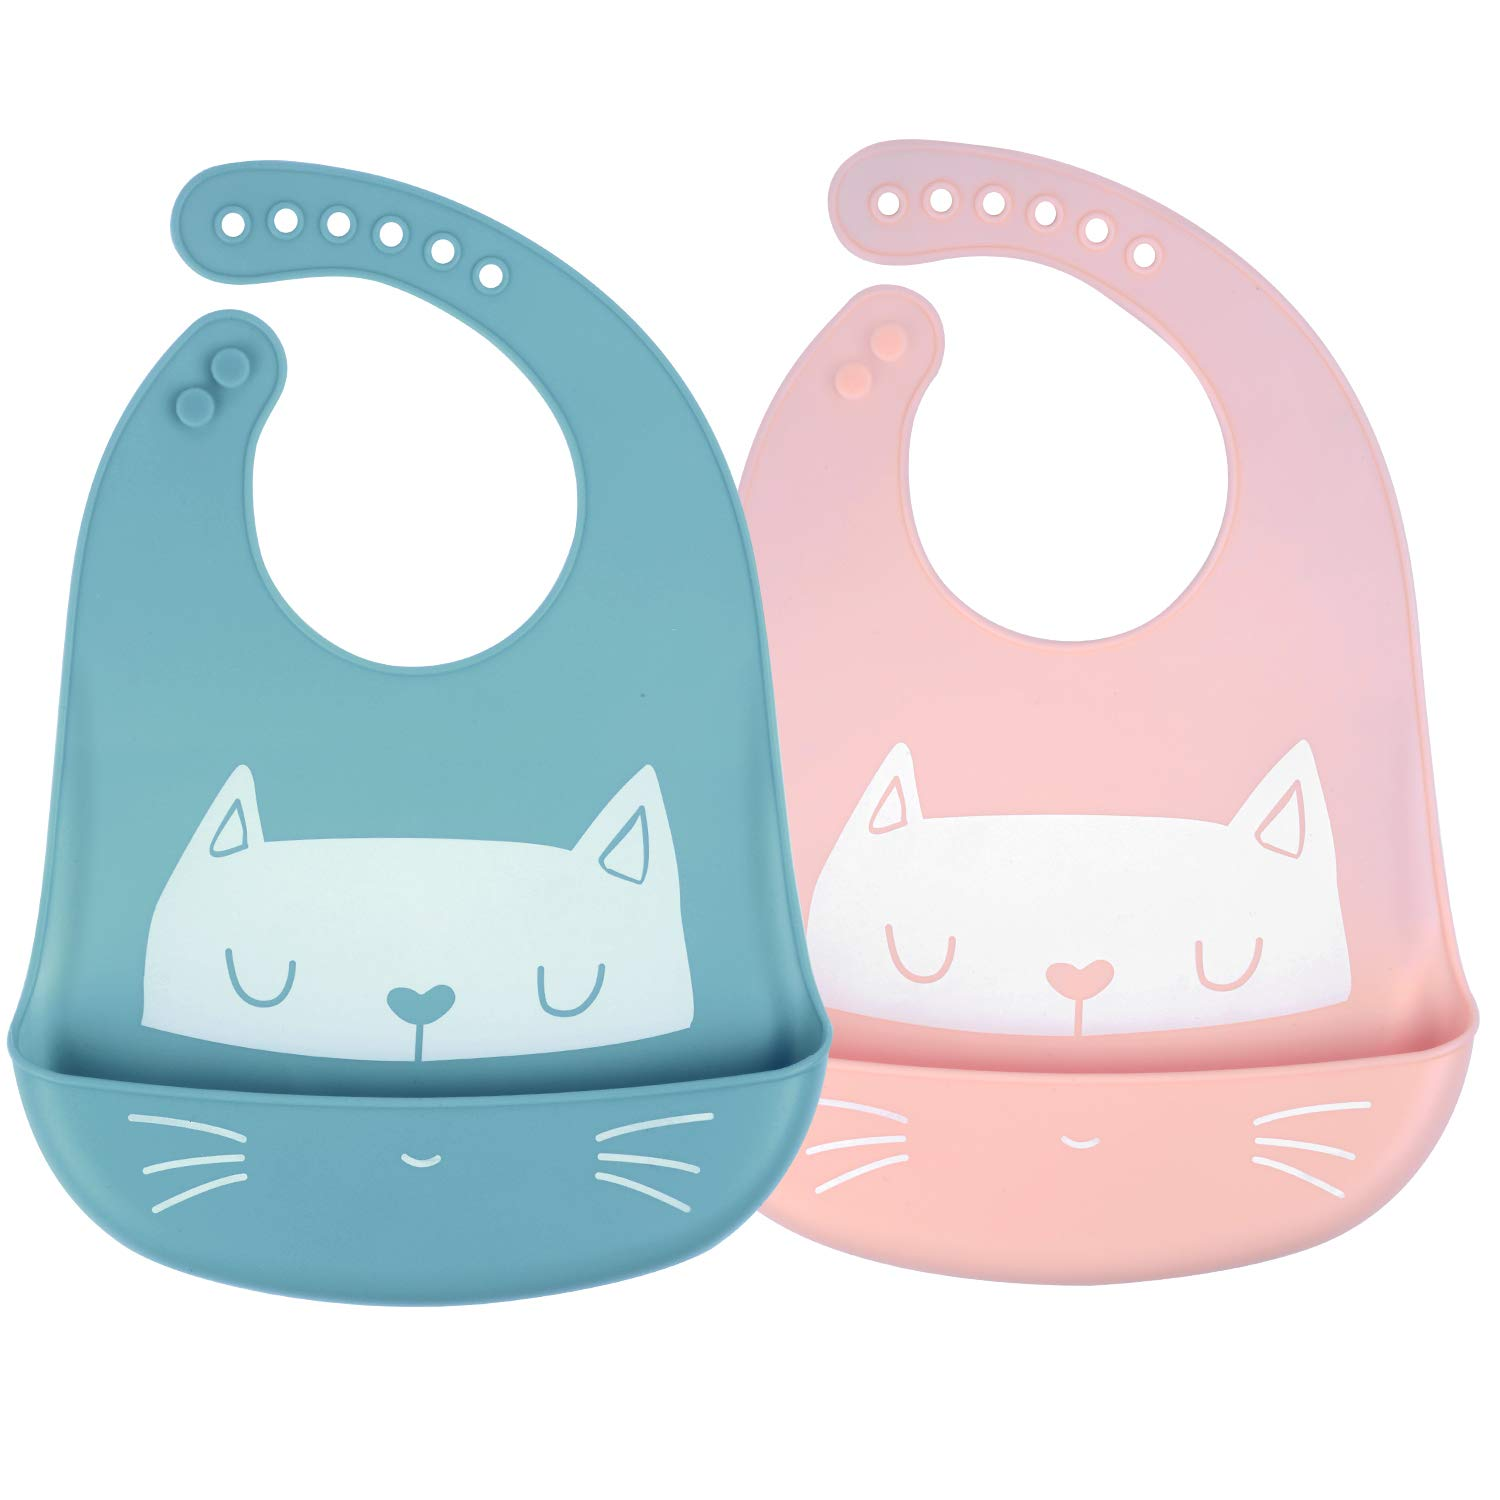 LOVK Silicone Bibs, 2 Pack Baby Bibs for Girl Boy, Adjustable Waterproof Bibs Washable Stain Feeding Bibs with Food Catcher for Babies